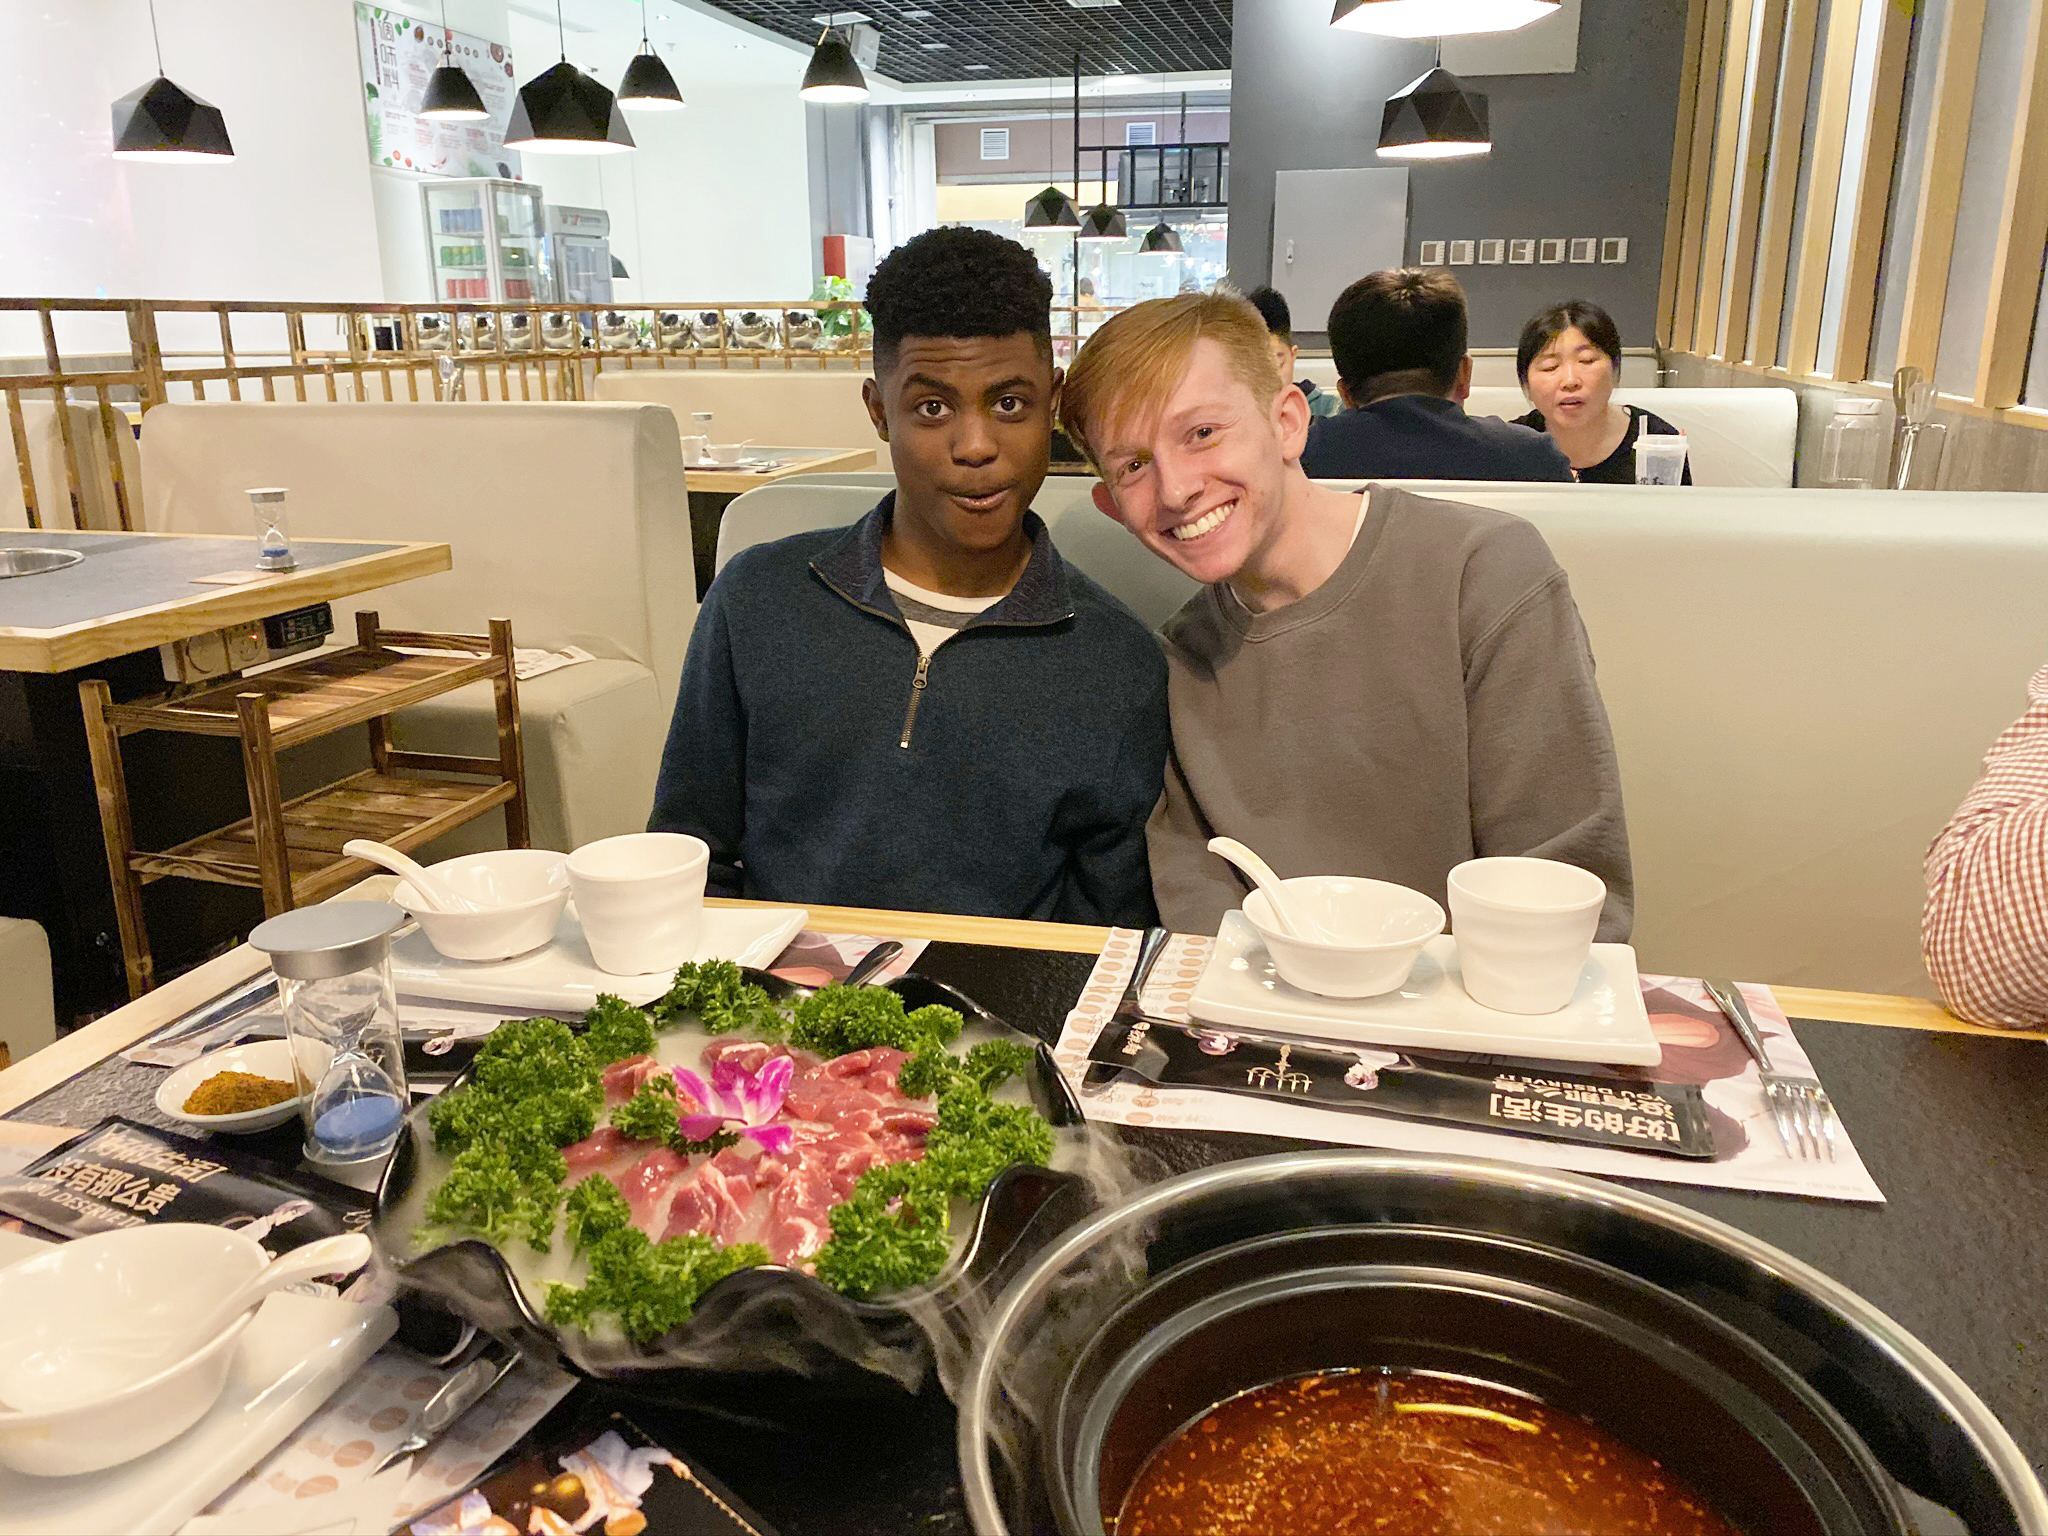 Hot pot for lunch! Photo credit: Valerie Kim